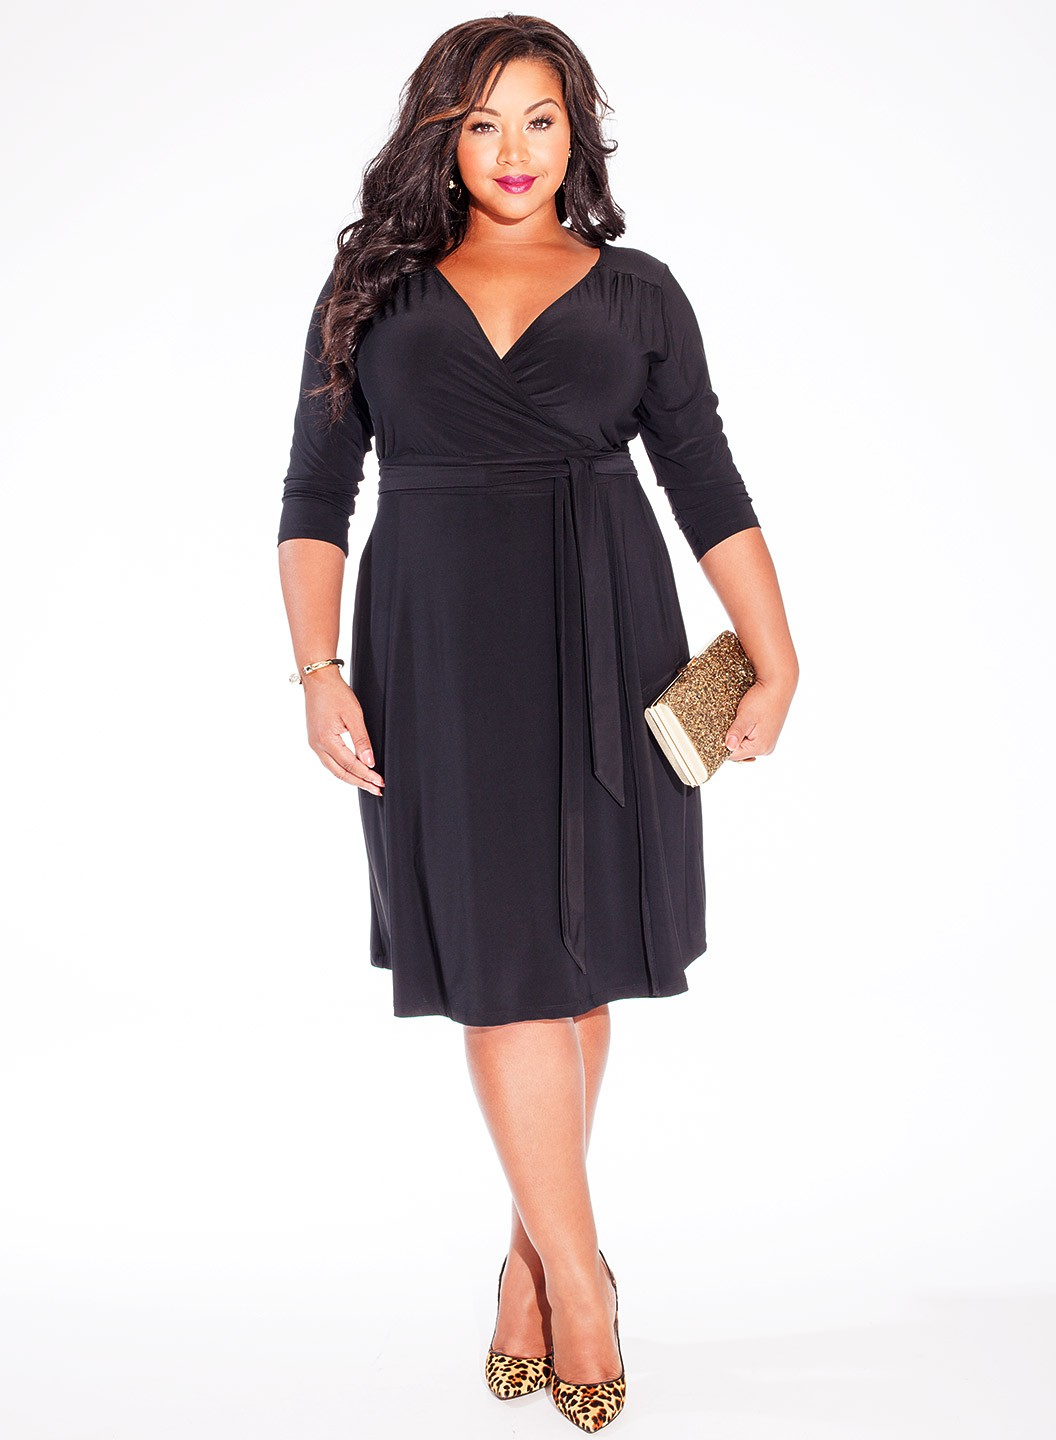 Plus Size Fashion Designers. Yes They Do Exist. Finding quality Plus Size Fashion Designers for the appzdnatw.cf Fashionista could not be more frustrating and difficult! To ease your worries and frustrations, I have amassed a list of the best of the best Contemporary Plus Size appzdnatw.cfg for a plus size boutique?Check out our Plus Size Boutique Directory!